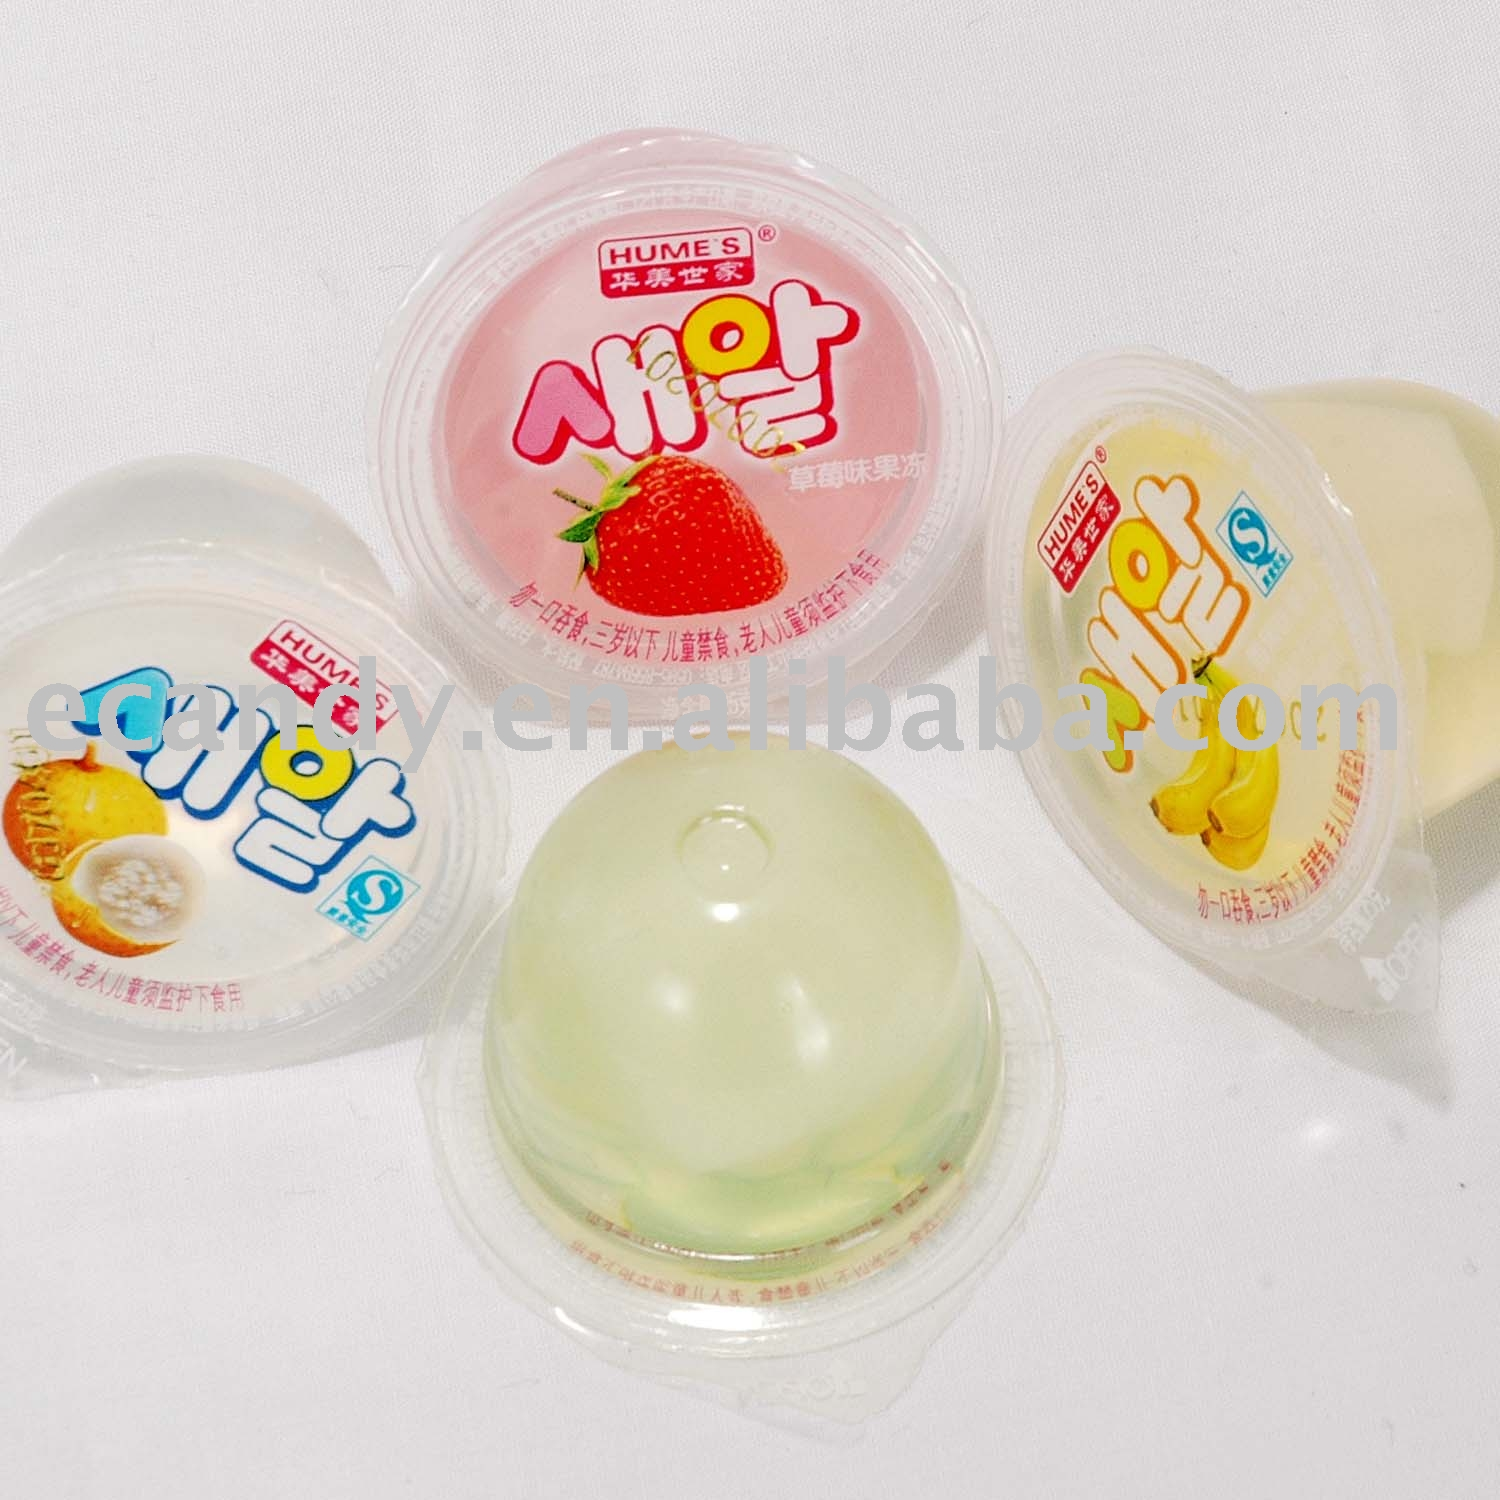 Fruit Jelly,Jelly product,Jelly